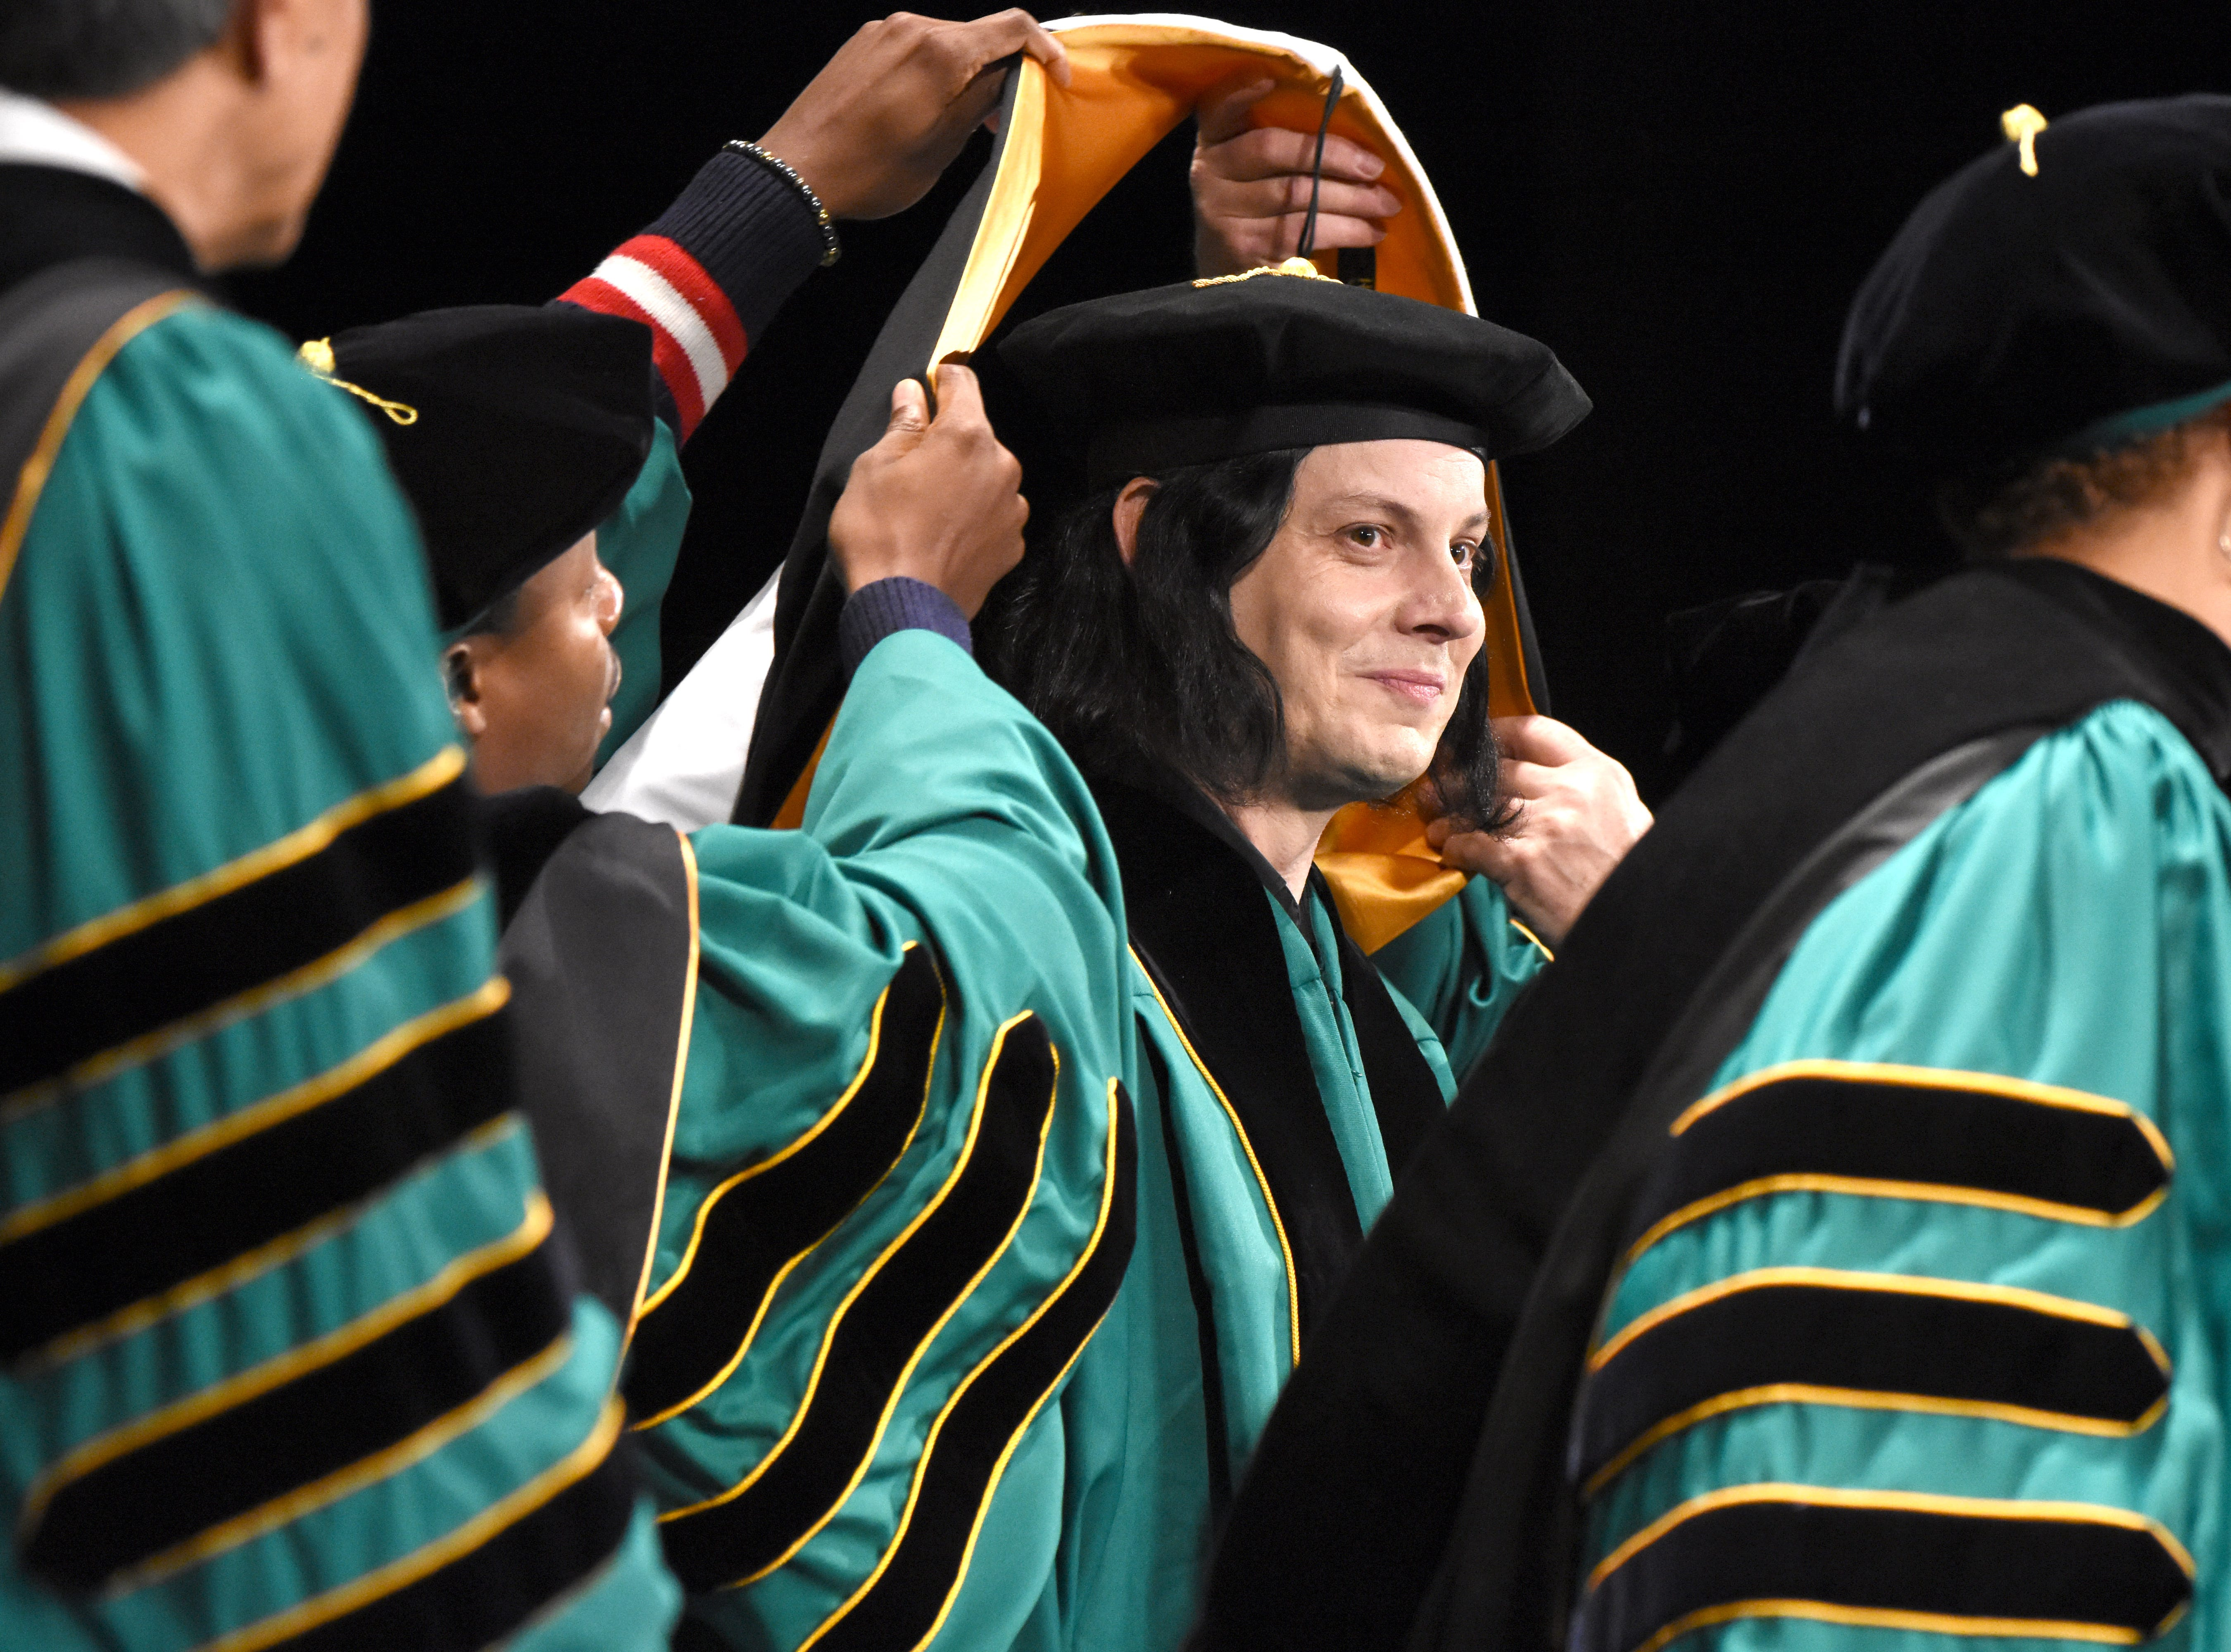 Musician Jack White receives an honorary degree during the Wayne State University commencement exercises at the Fox Theatre on Friday, May 3, 2019.